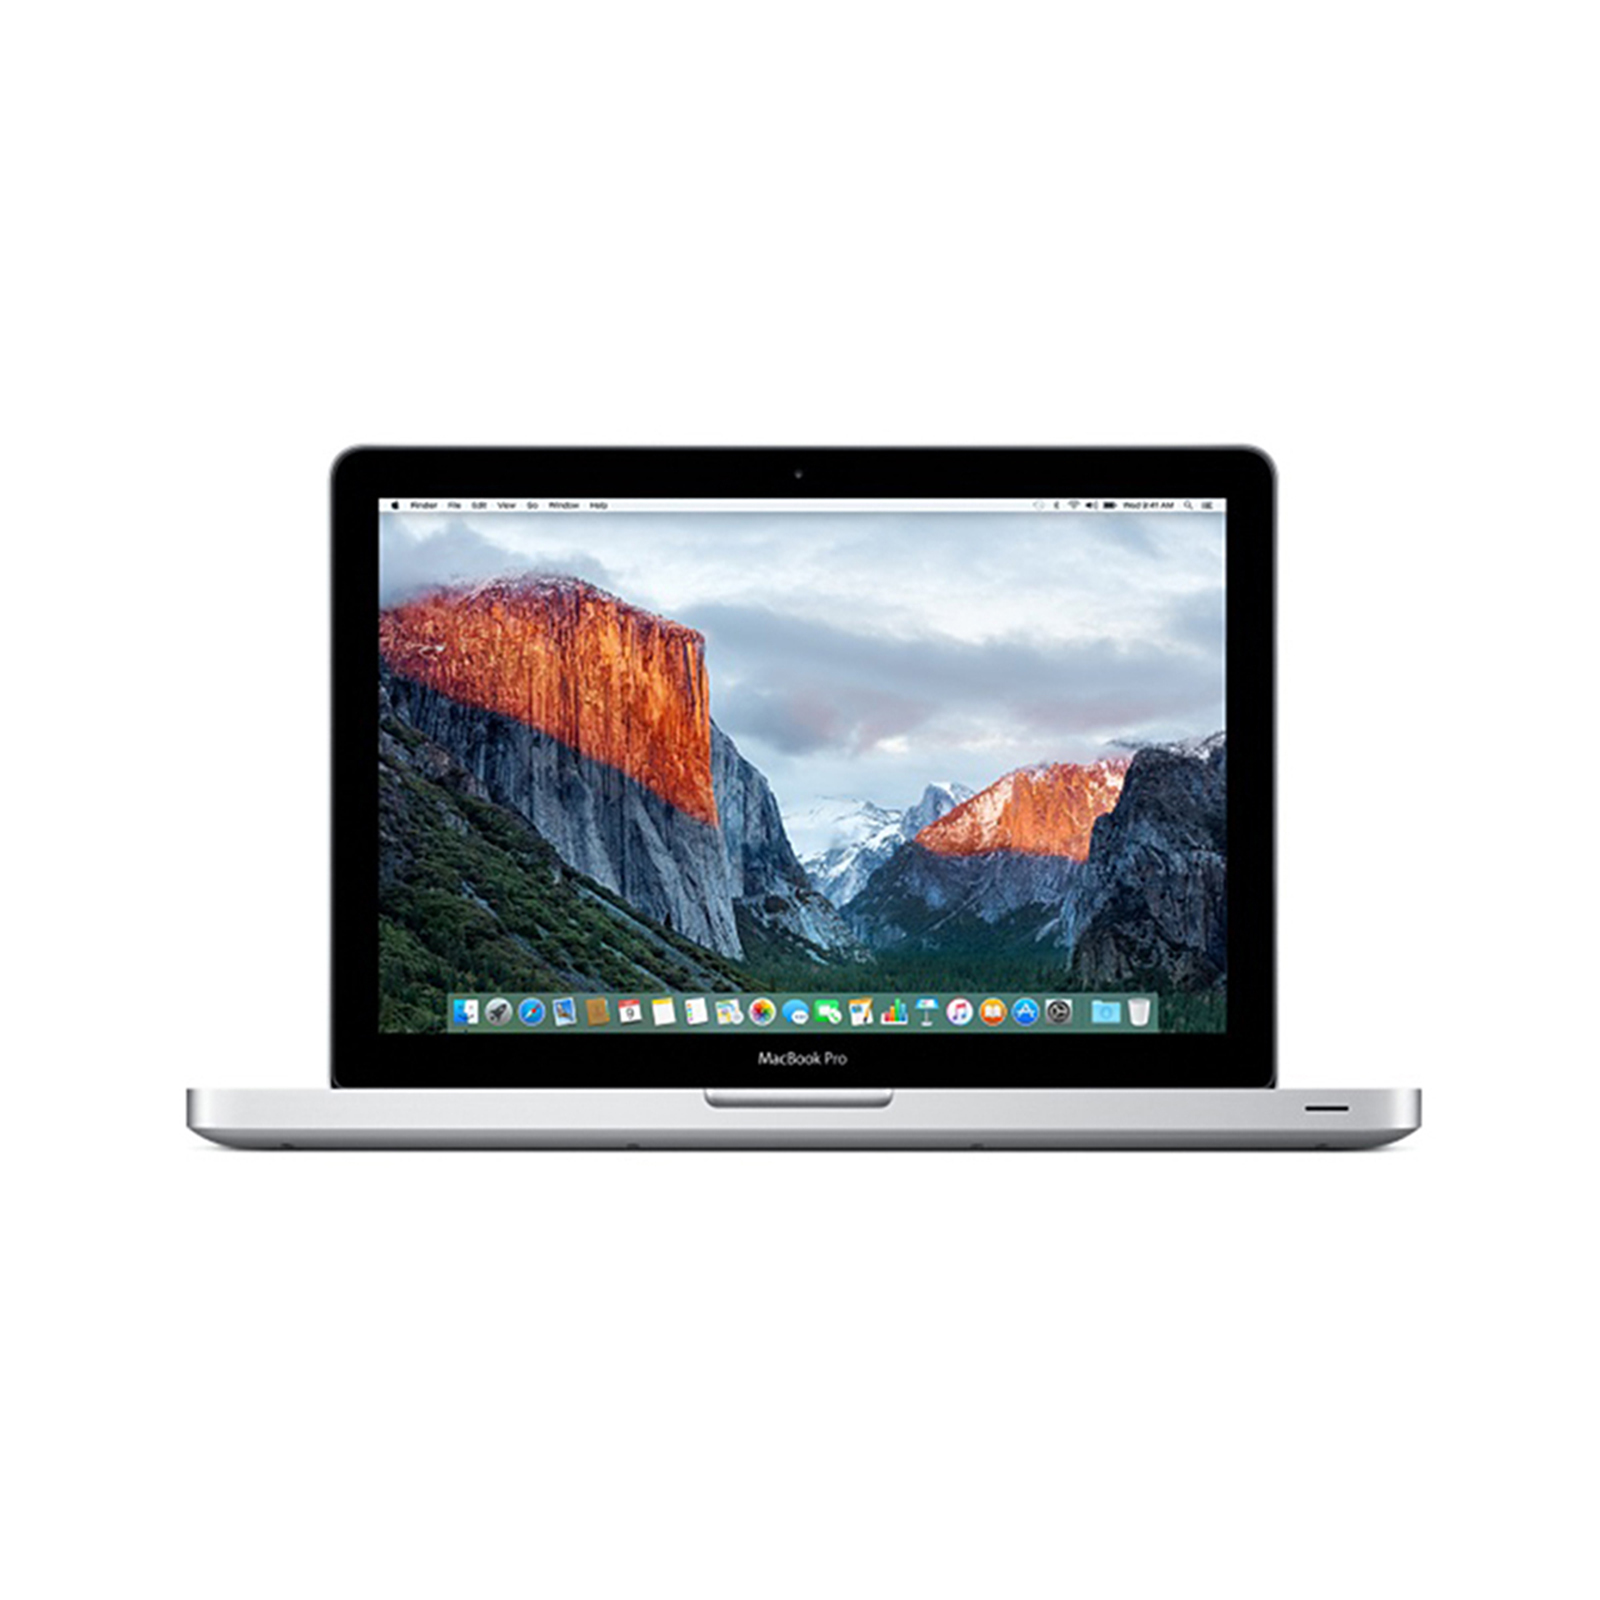 MacBook Pro (13-inch, Mid 2012) Intel Core i5 2.5 GHz 4GB 500GB